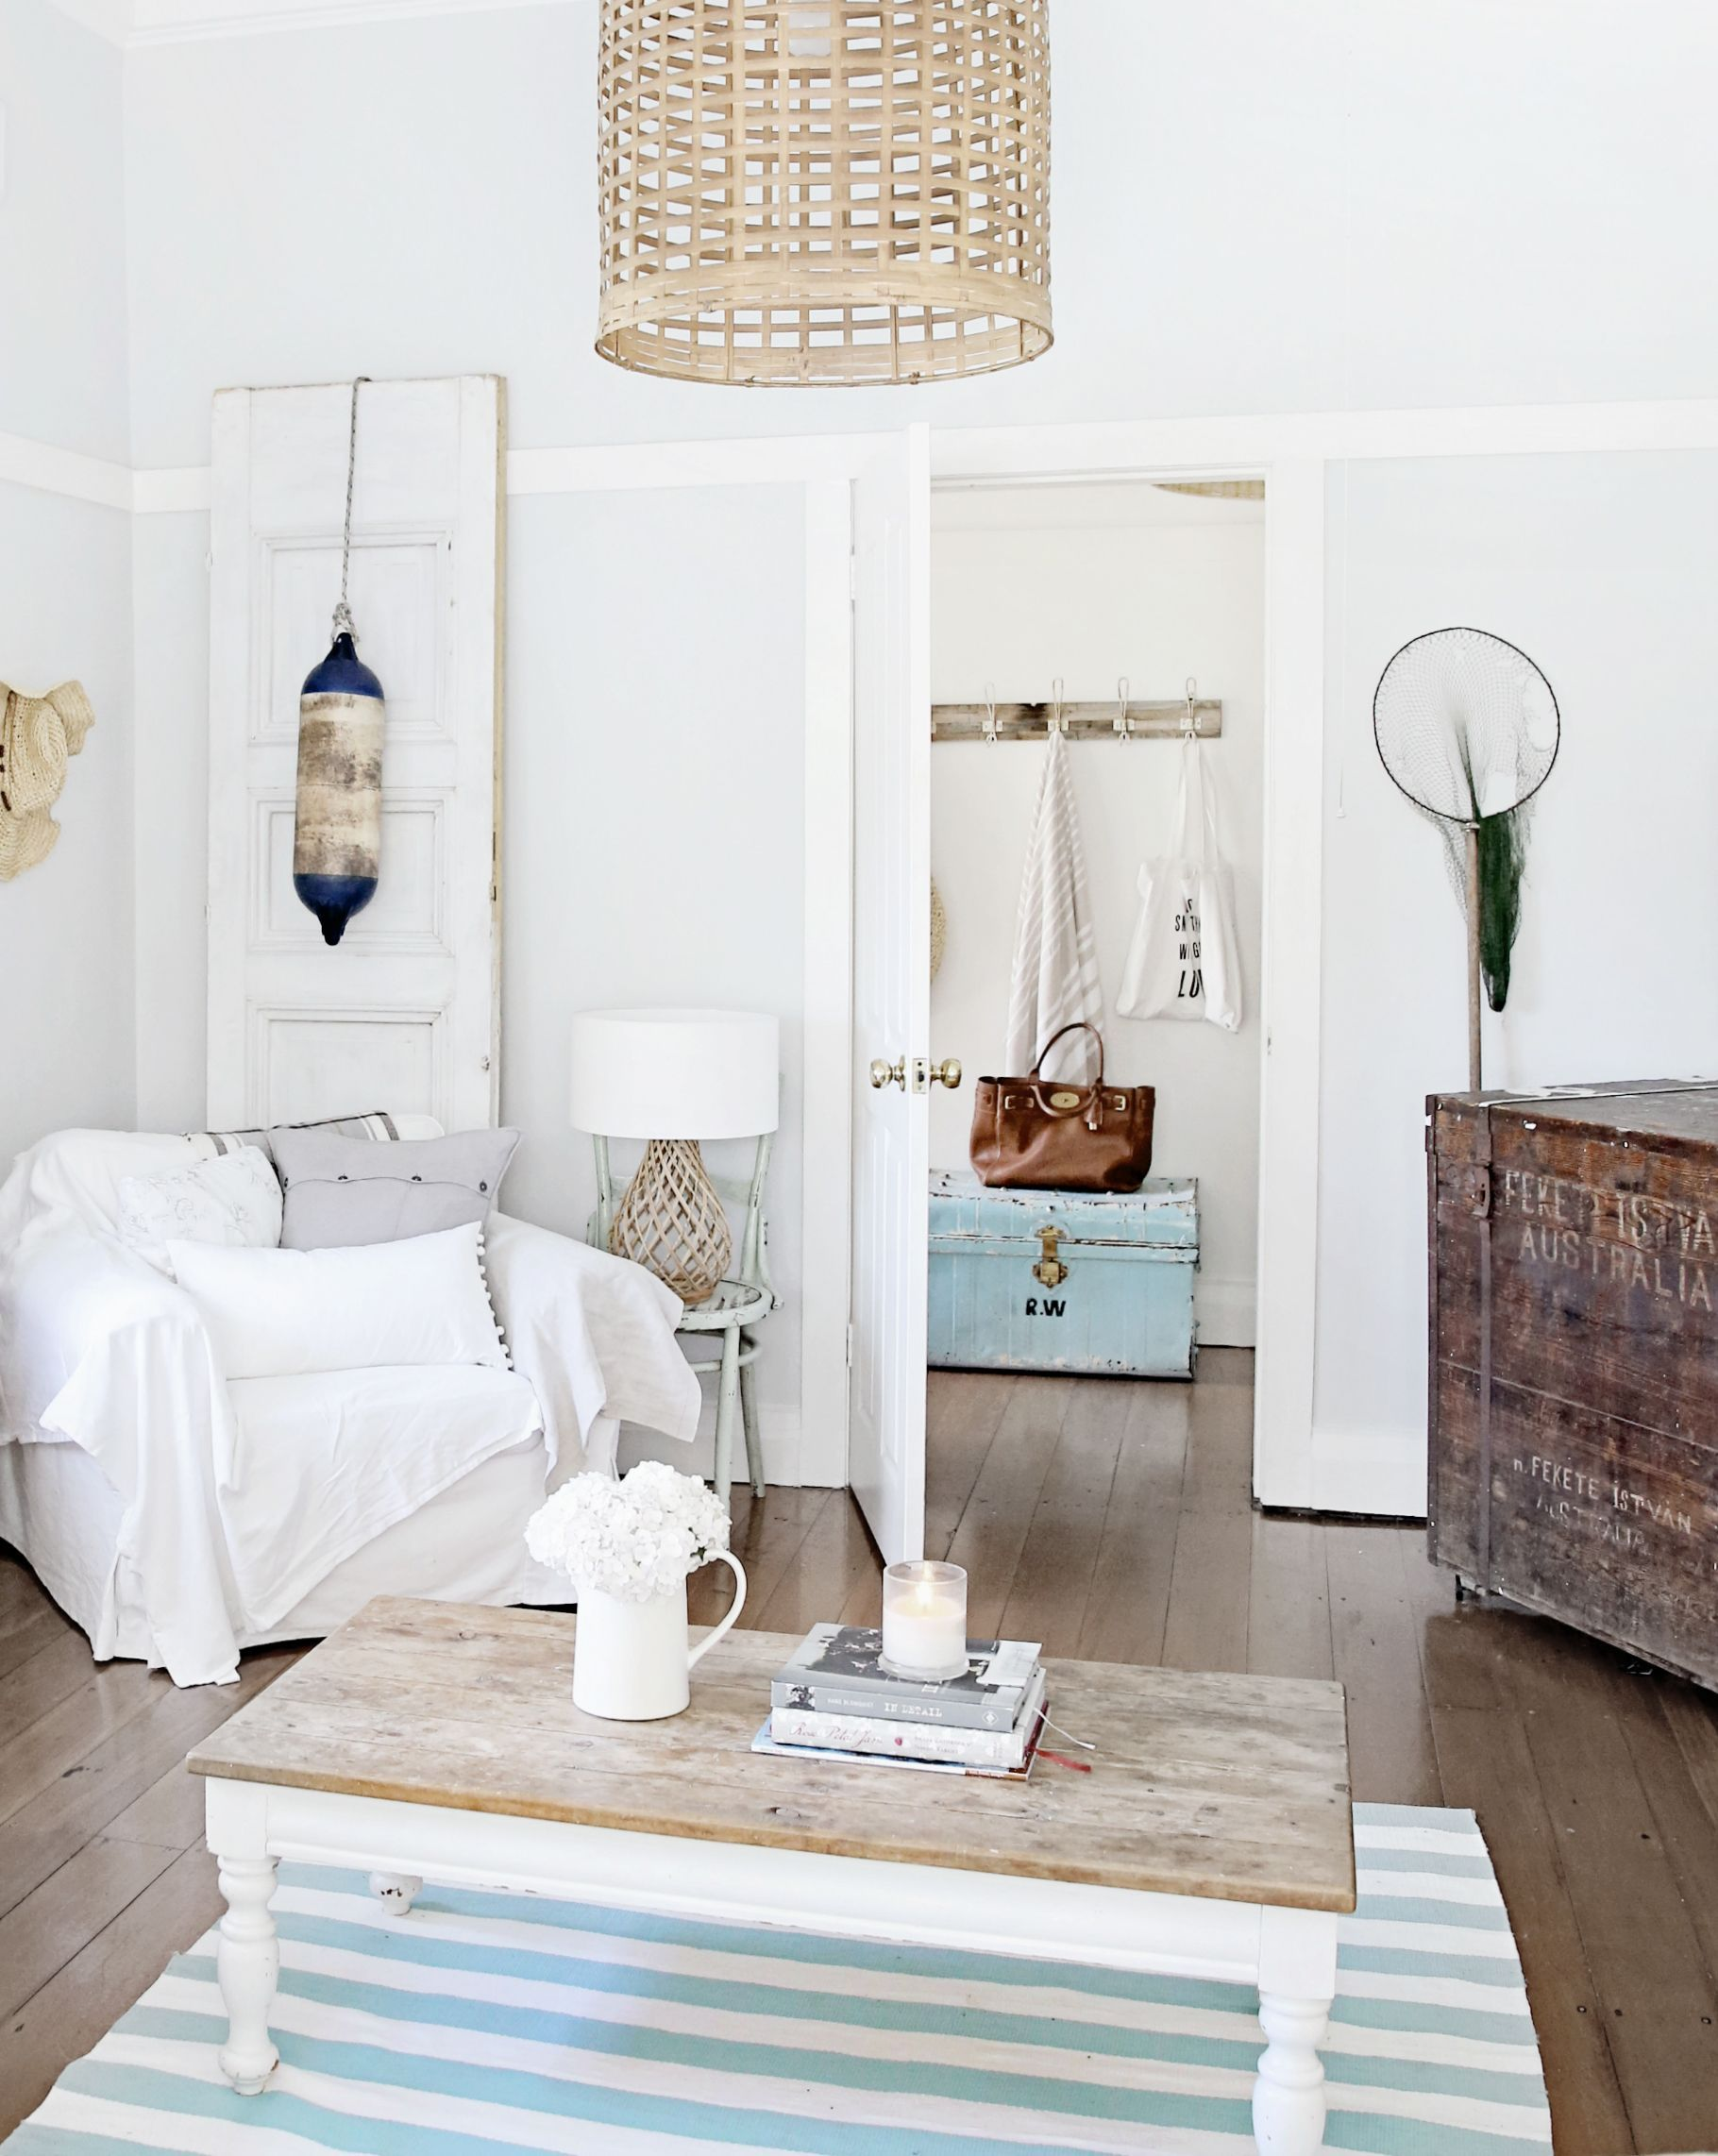 diy abstract decor tour beach living delightful art rooms room family ideas amazing bungalow farmhouse city beachy outstanding furniture coastal decorating